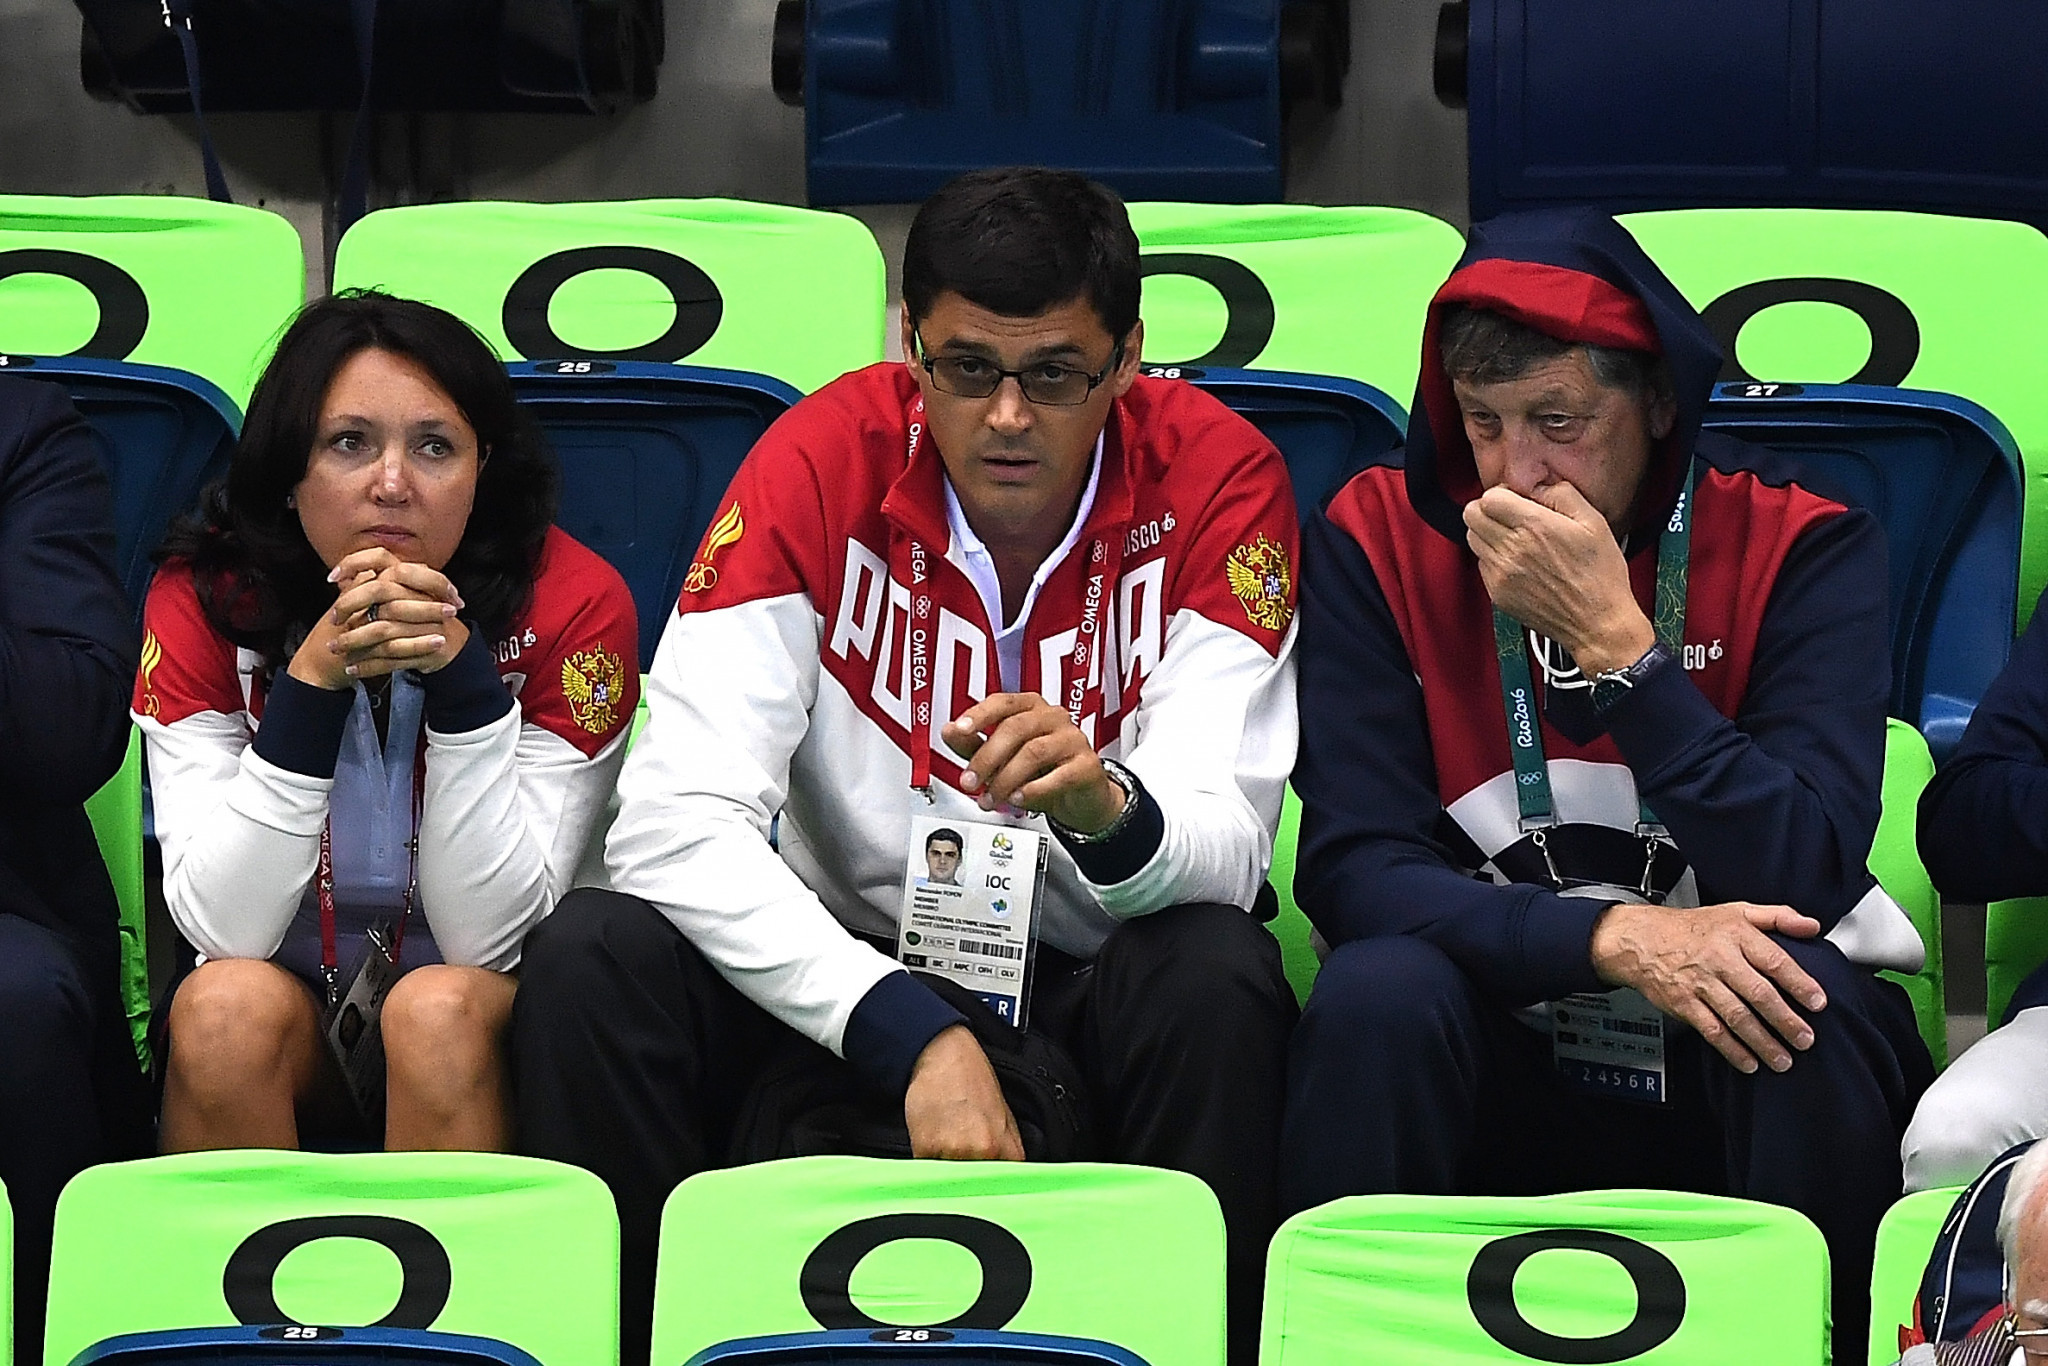 Alexander Popov, centre, was comfortably beaten in today's election ©Getty Images